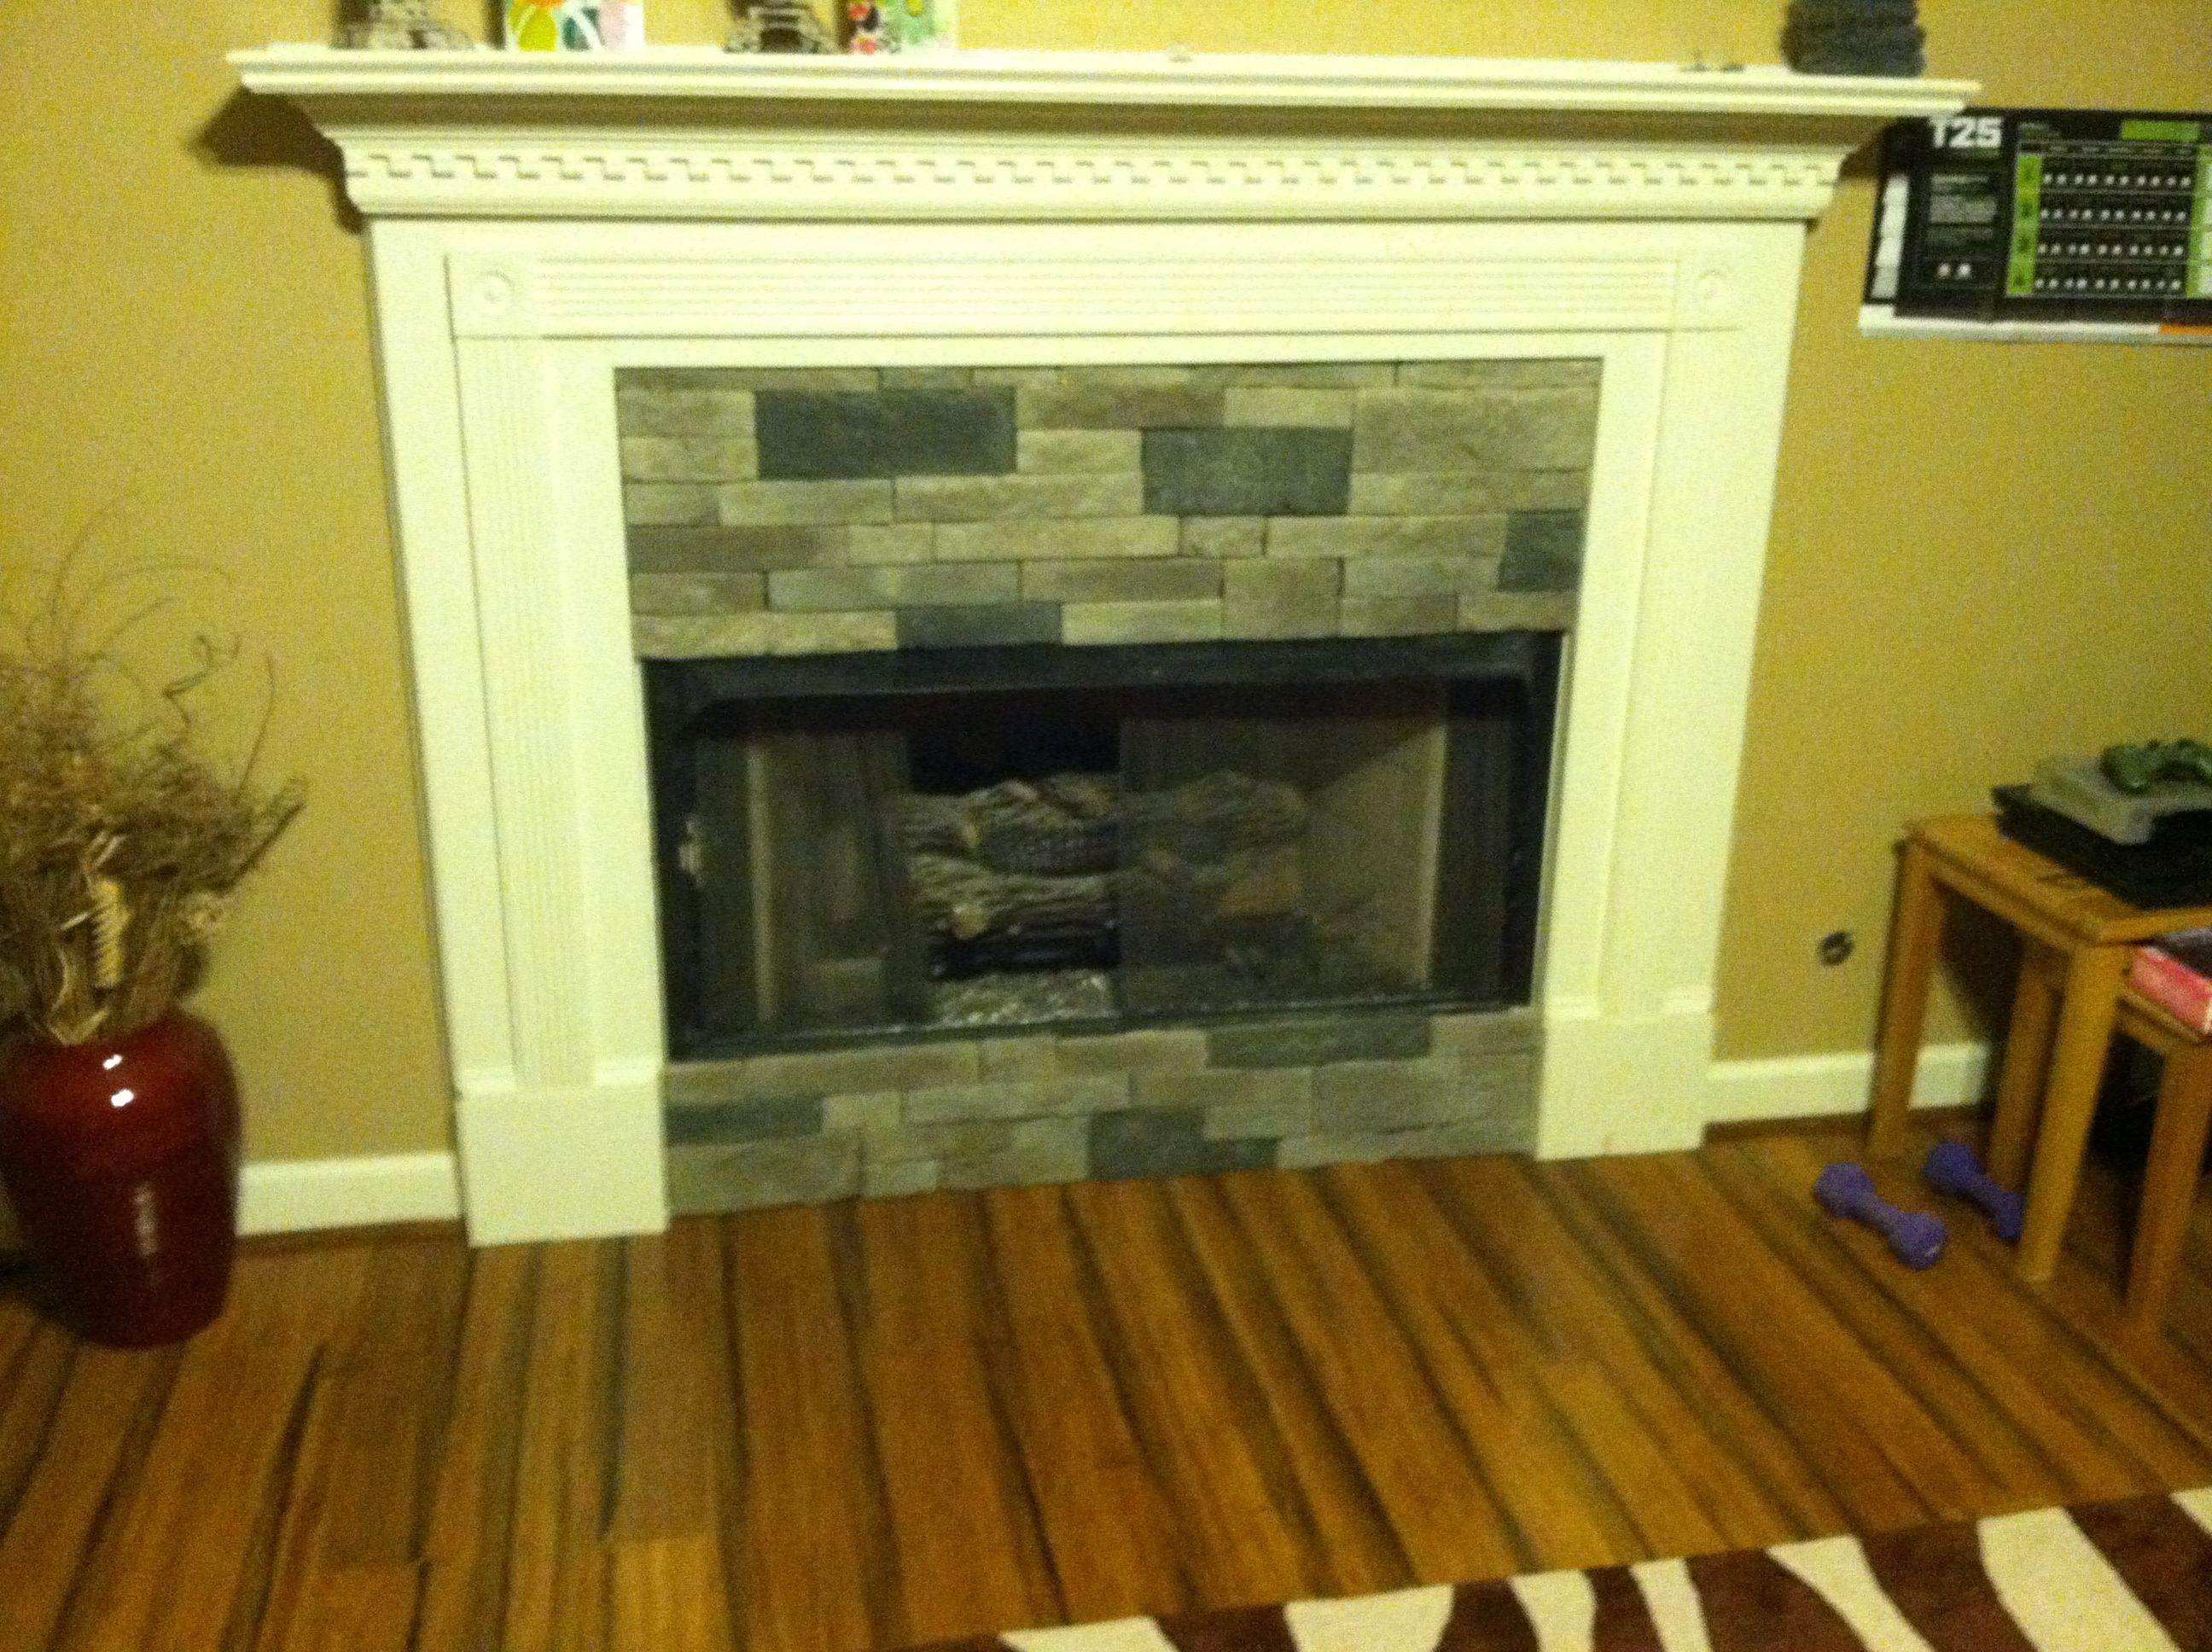 Airstone installation on fireplace honeydo handyman services csra